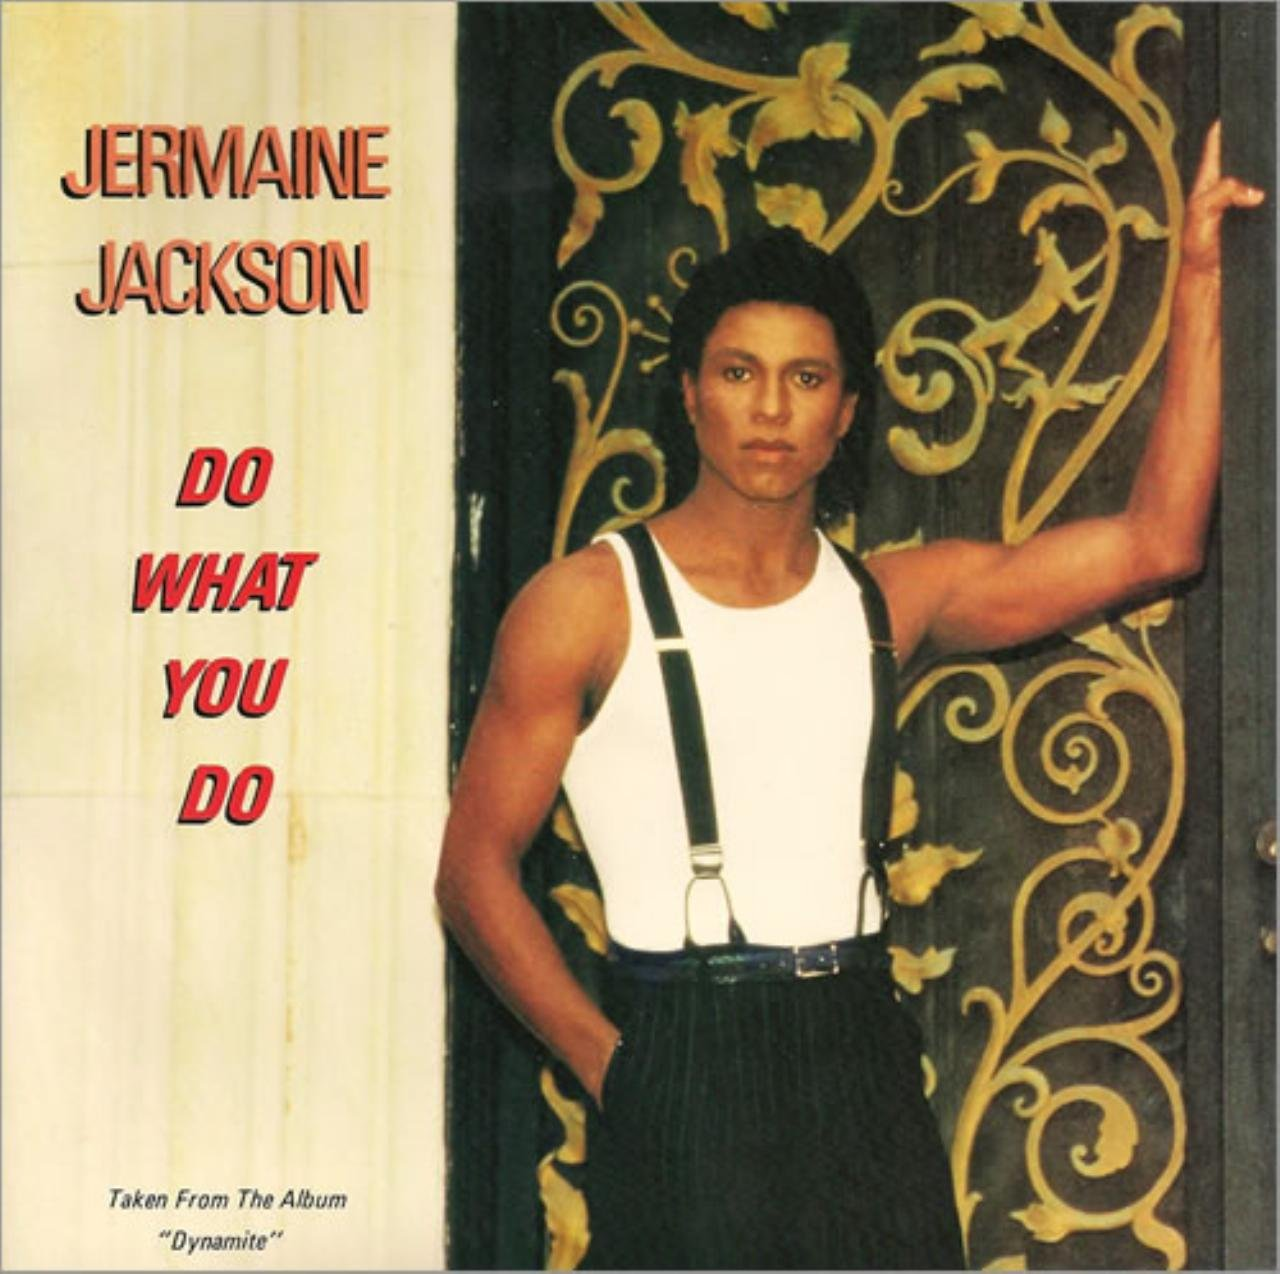 Do What You Do: Jermaine Jackson (Vinyl)